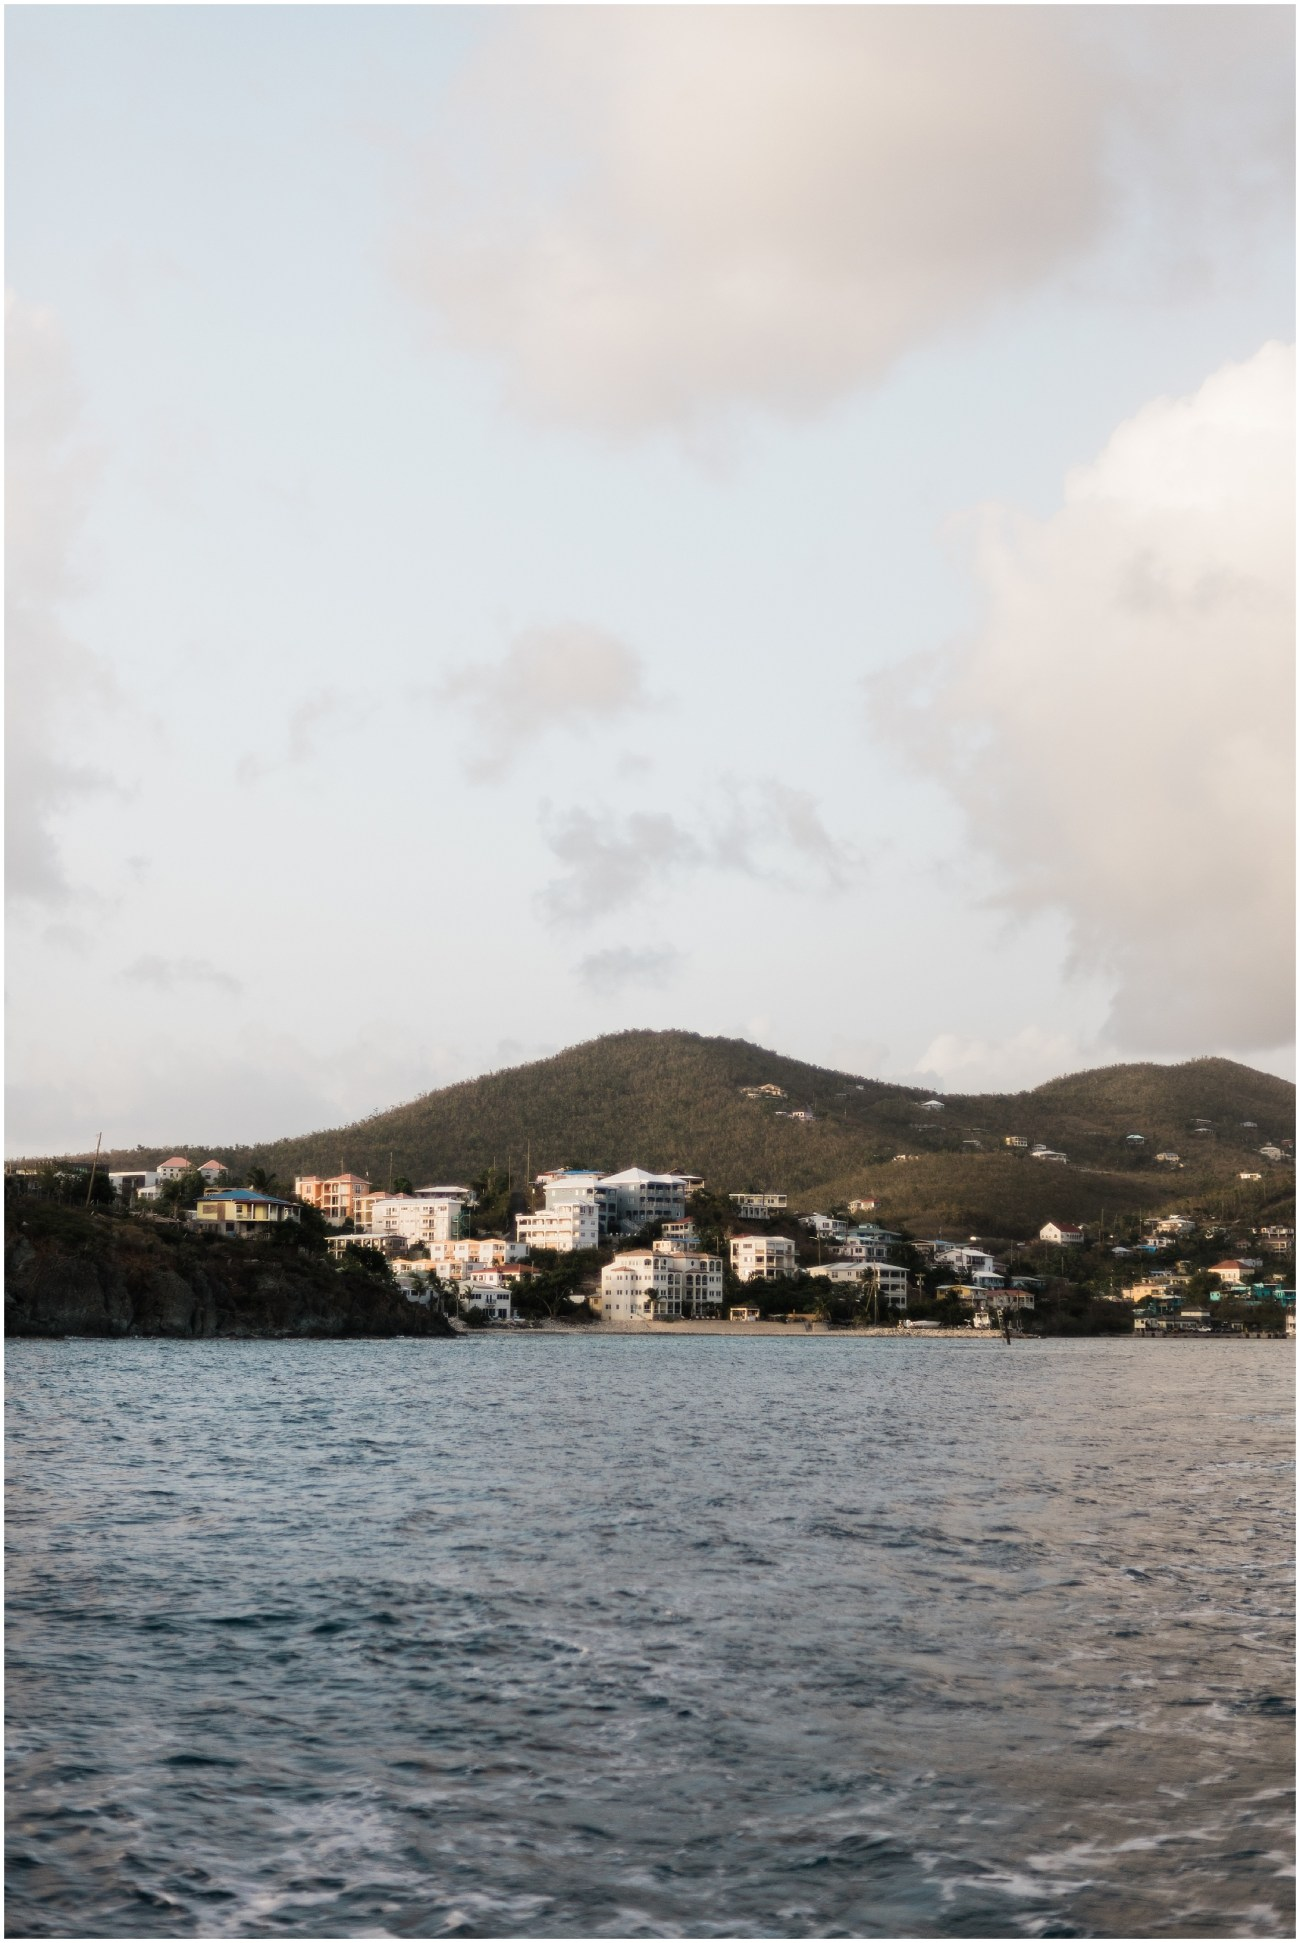 View from the ferry of Cruz Bay, St. John, US Virgin Islands